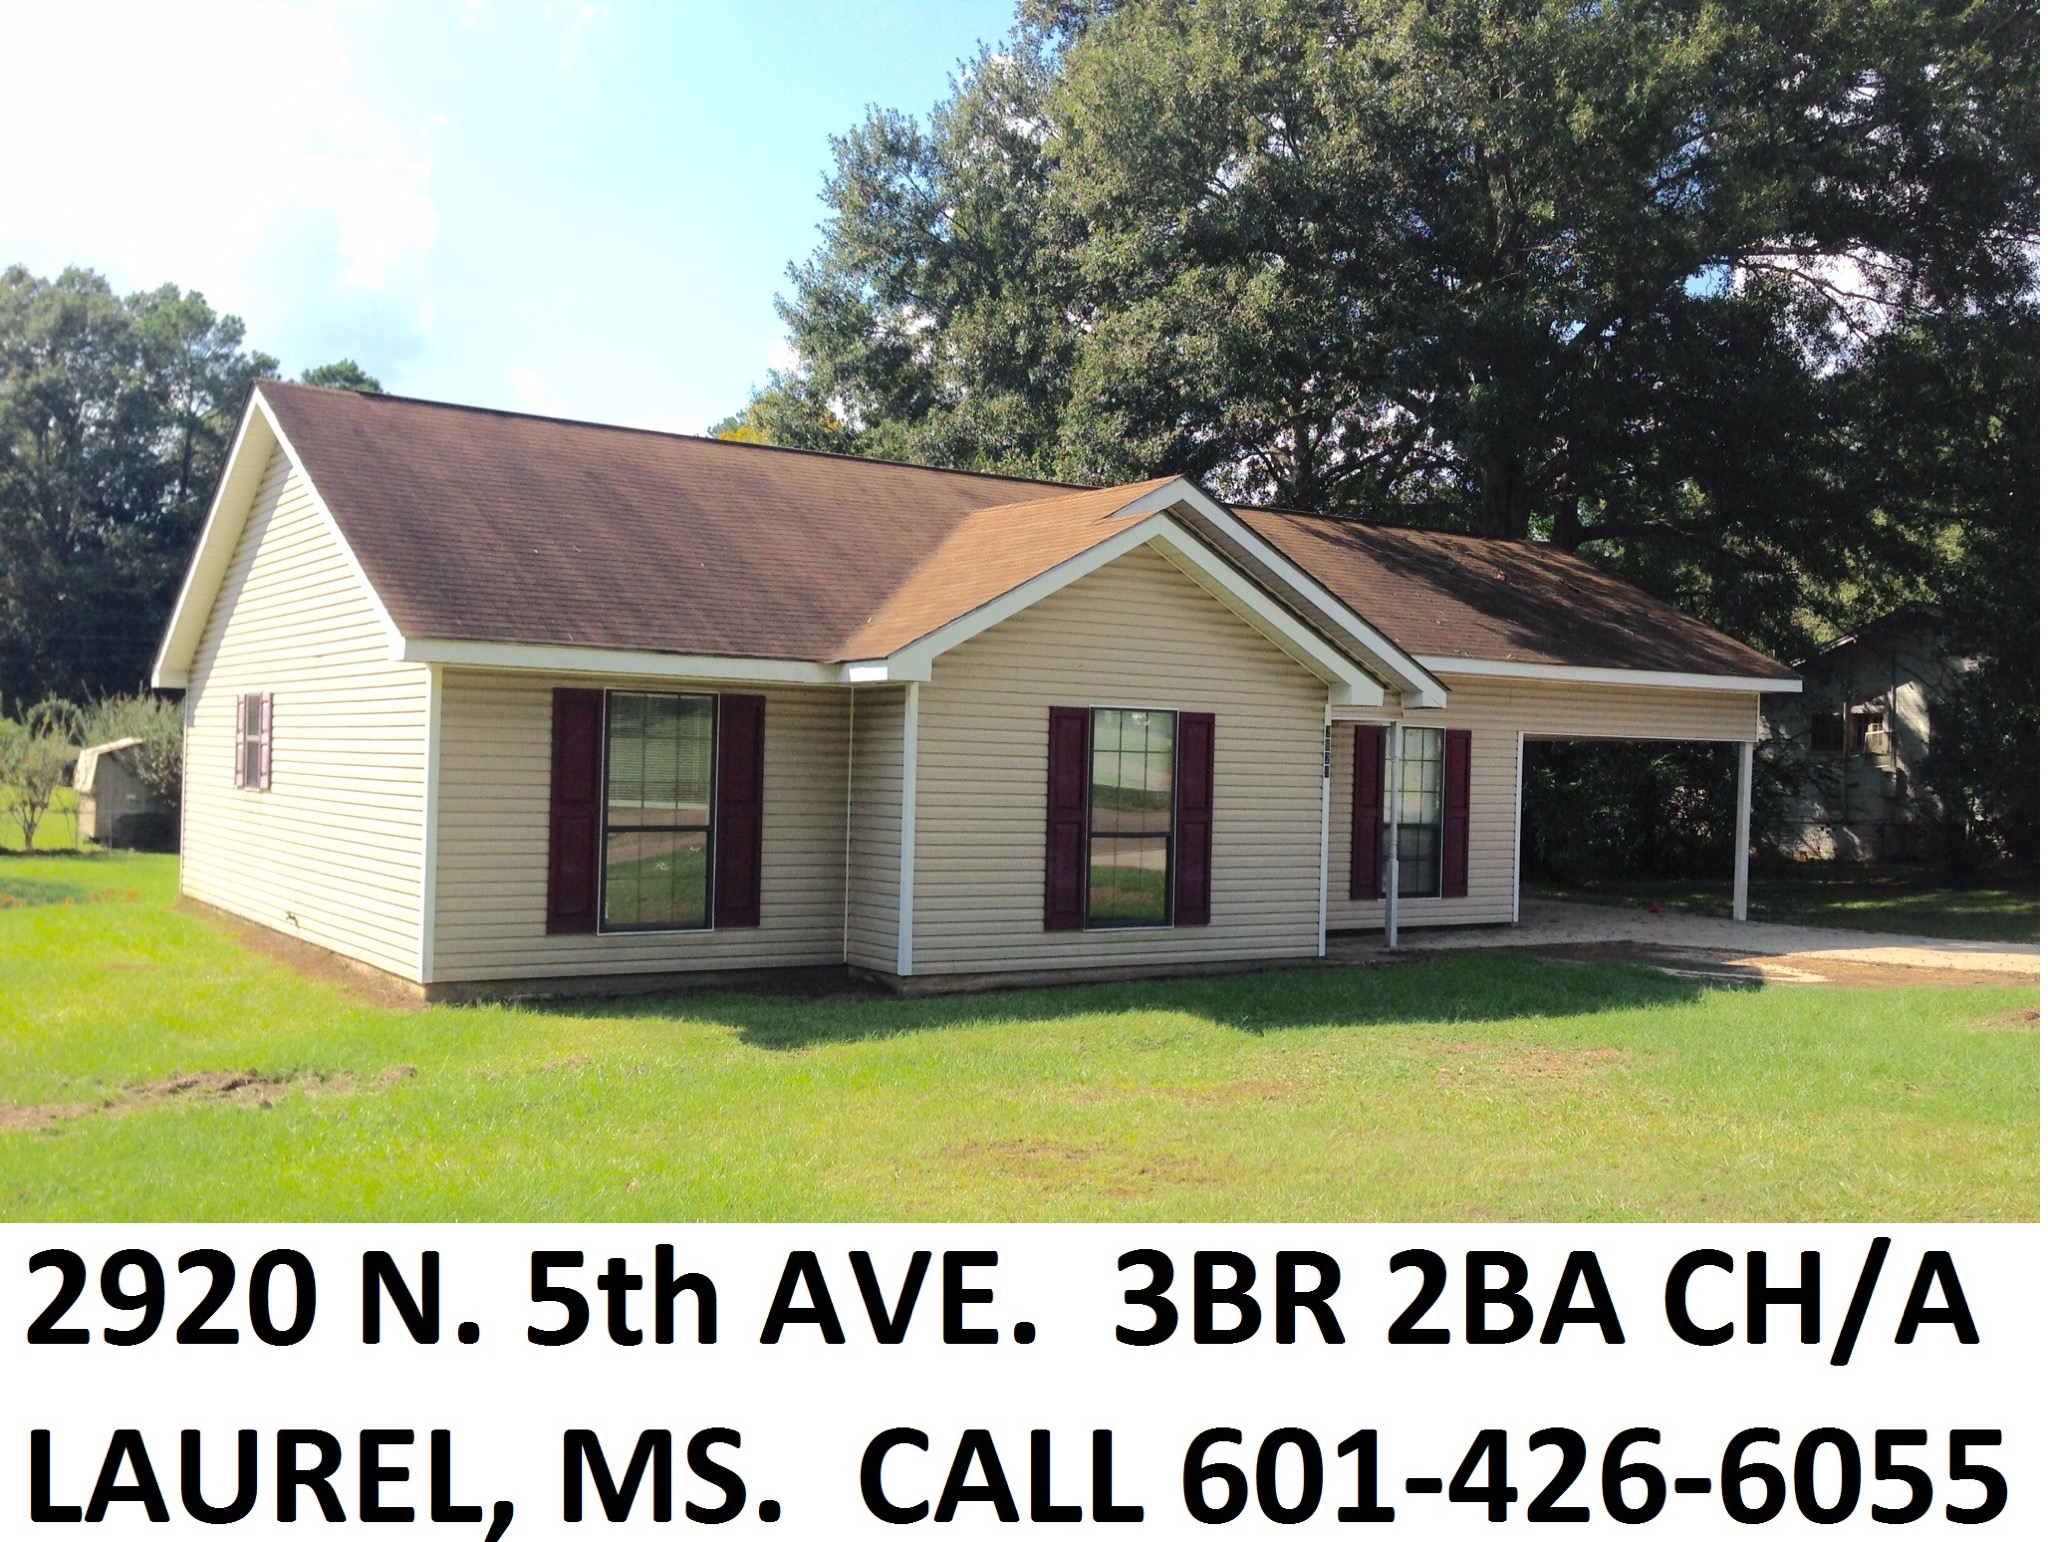 Section 8 Houses 515 N 13th Ave, Laurel, MS 39440 - YP.com